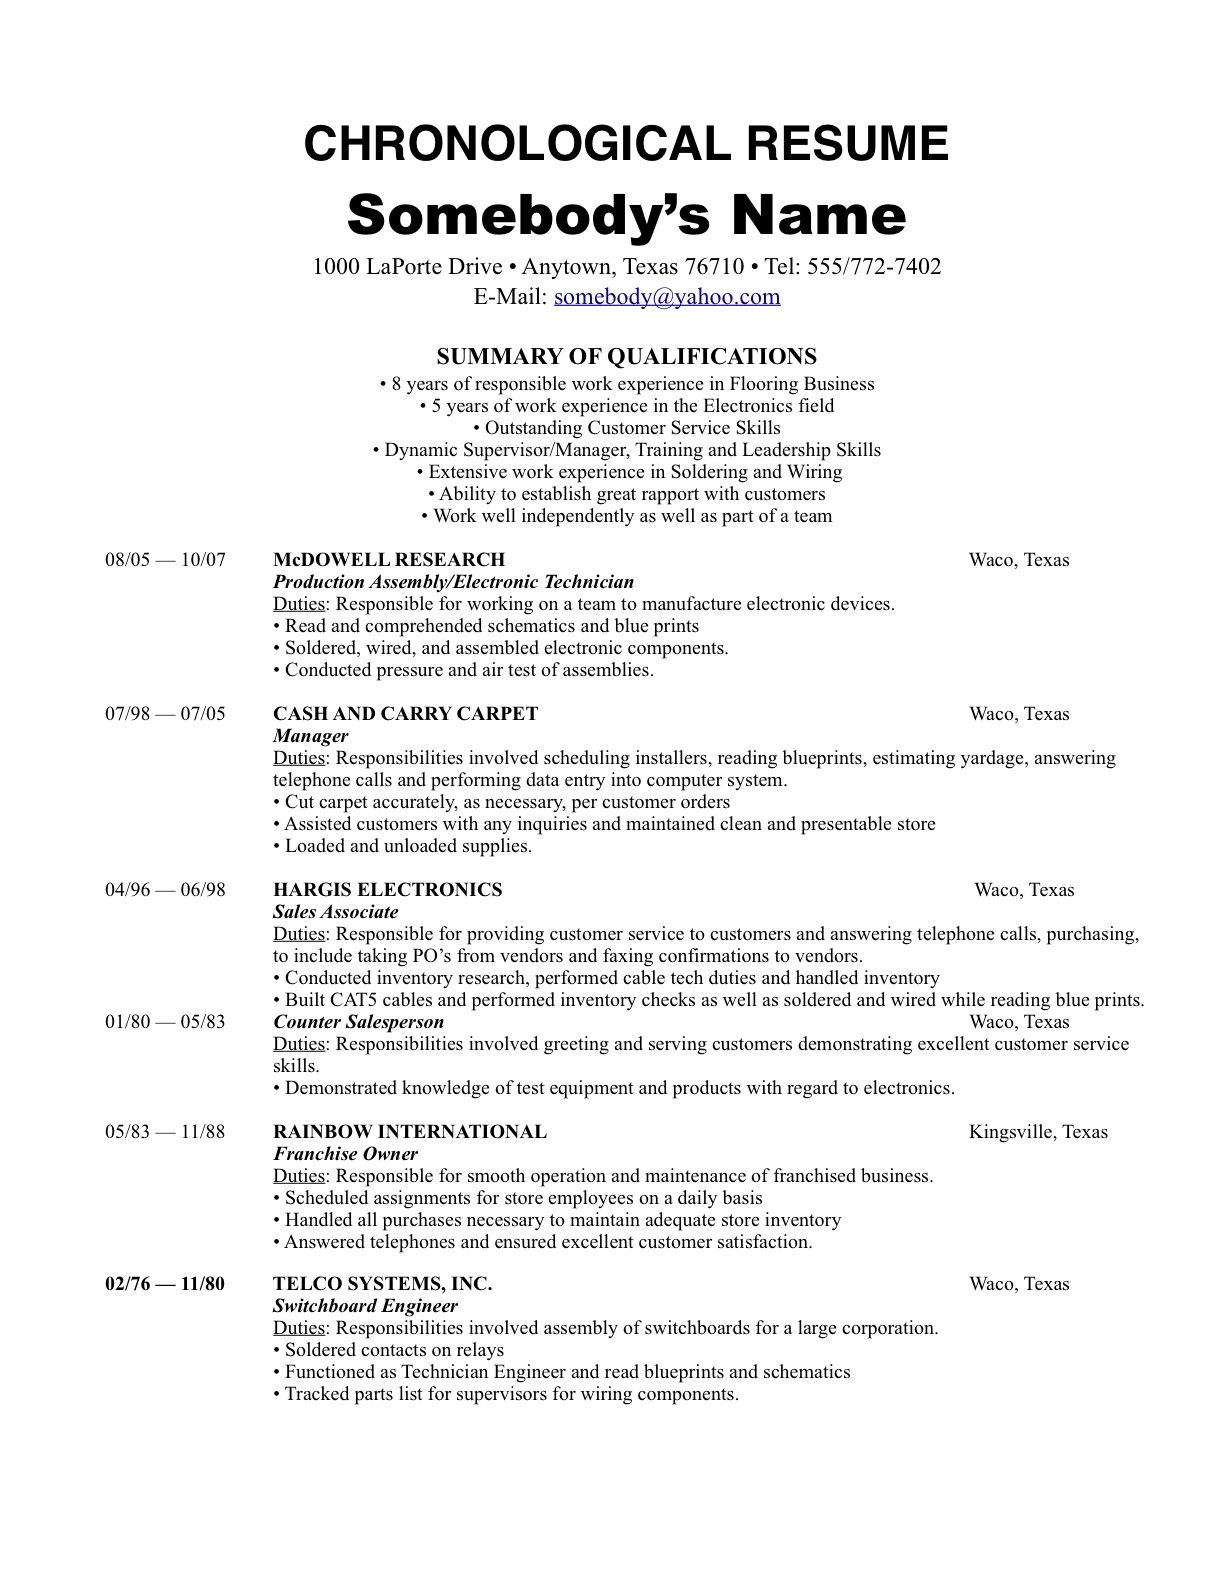 Chronological Order Resume Example Dc0364f86 The Most ...